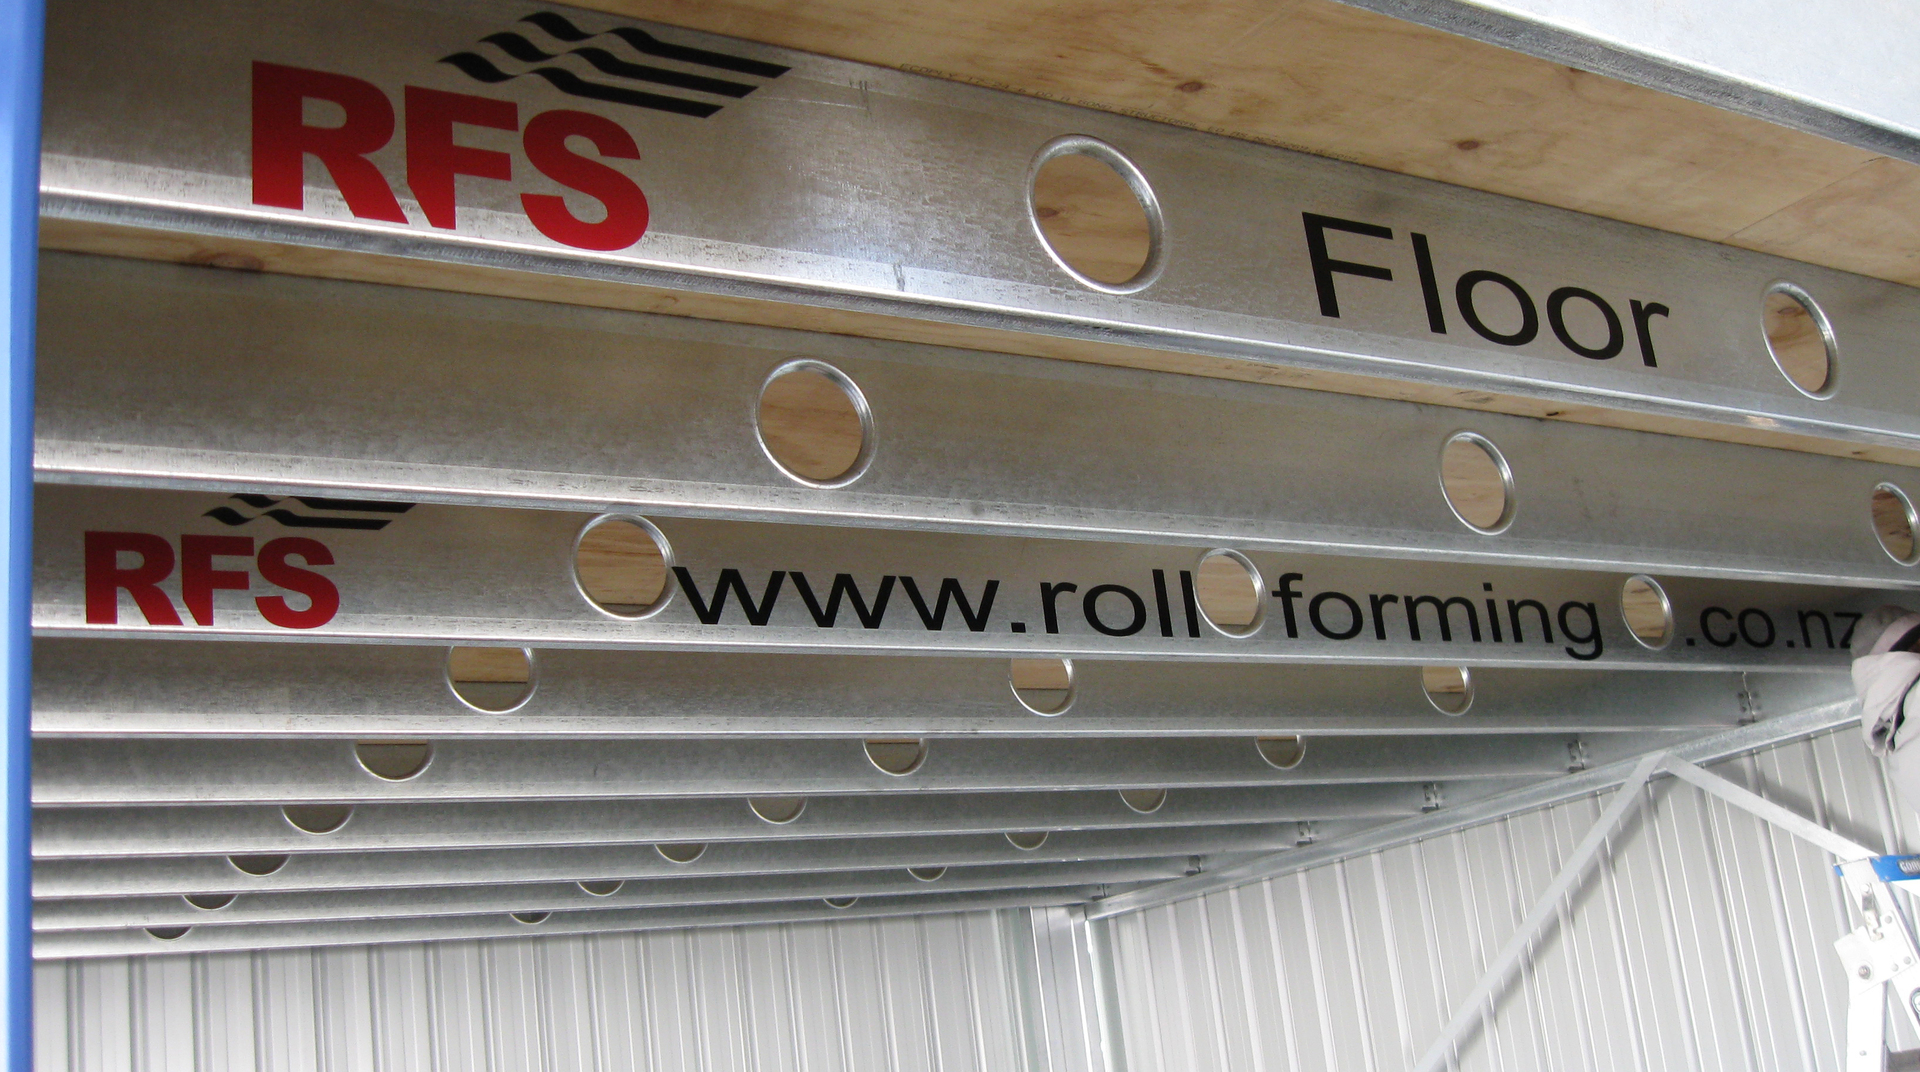 The RFS Steel Floor Joist System.